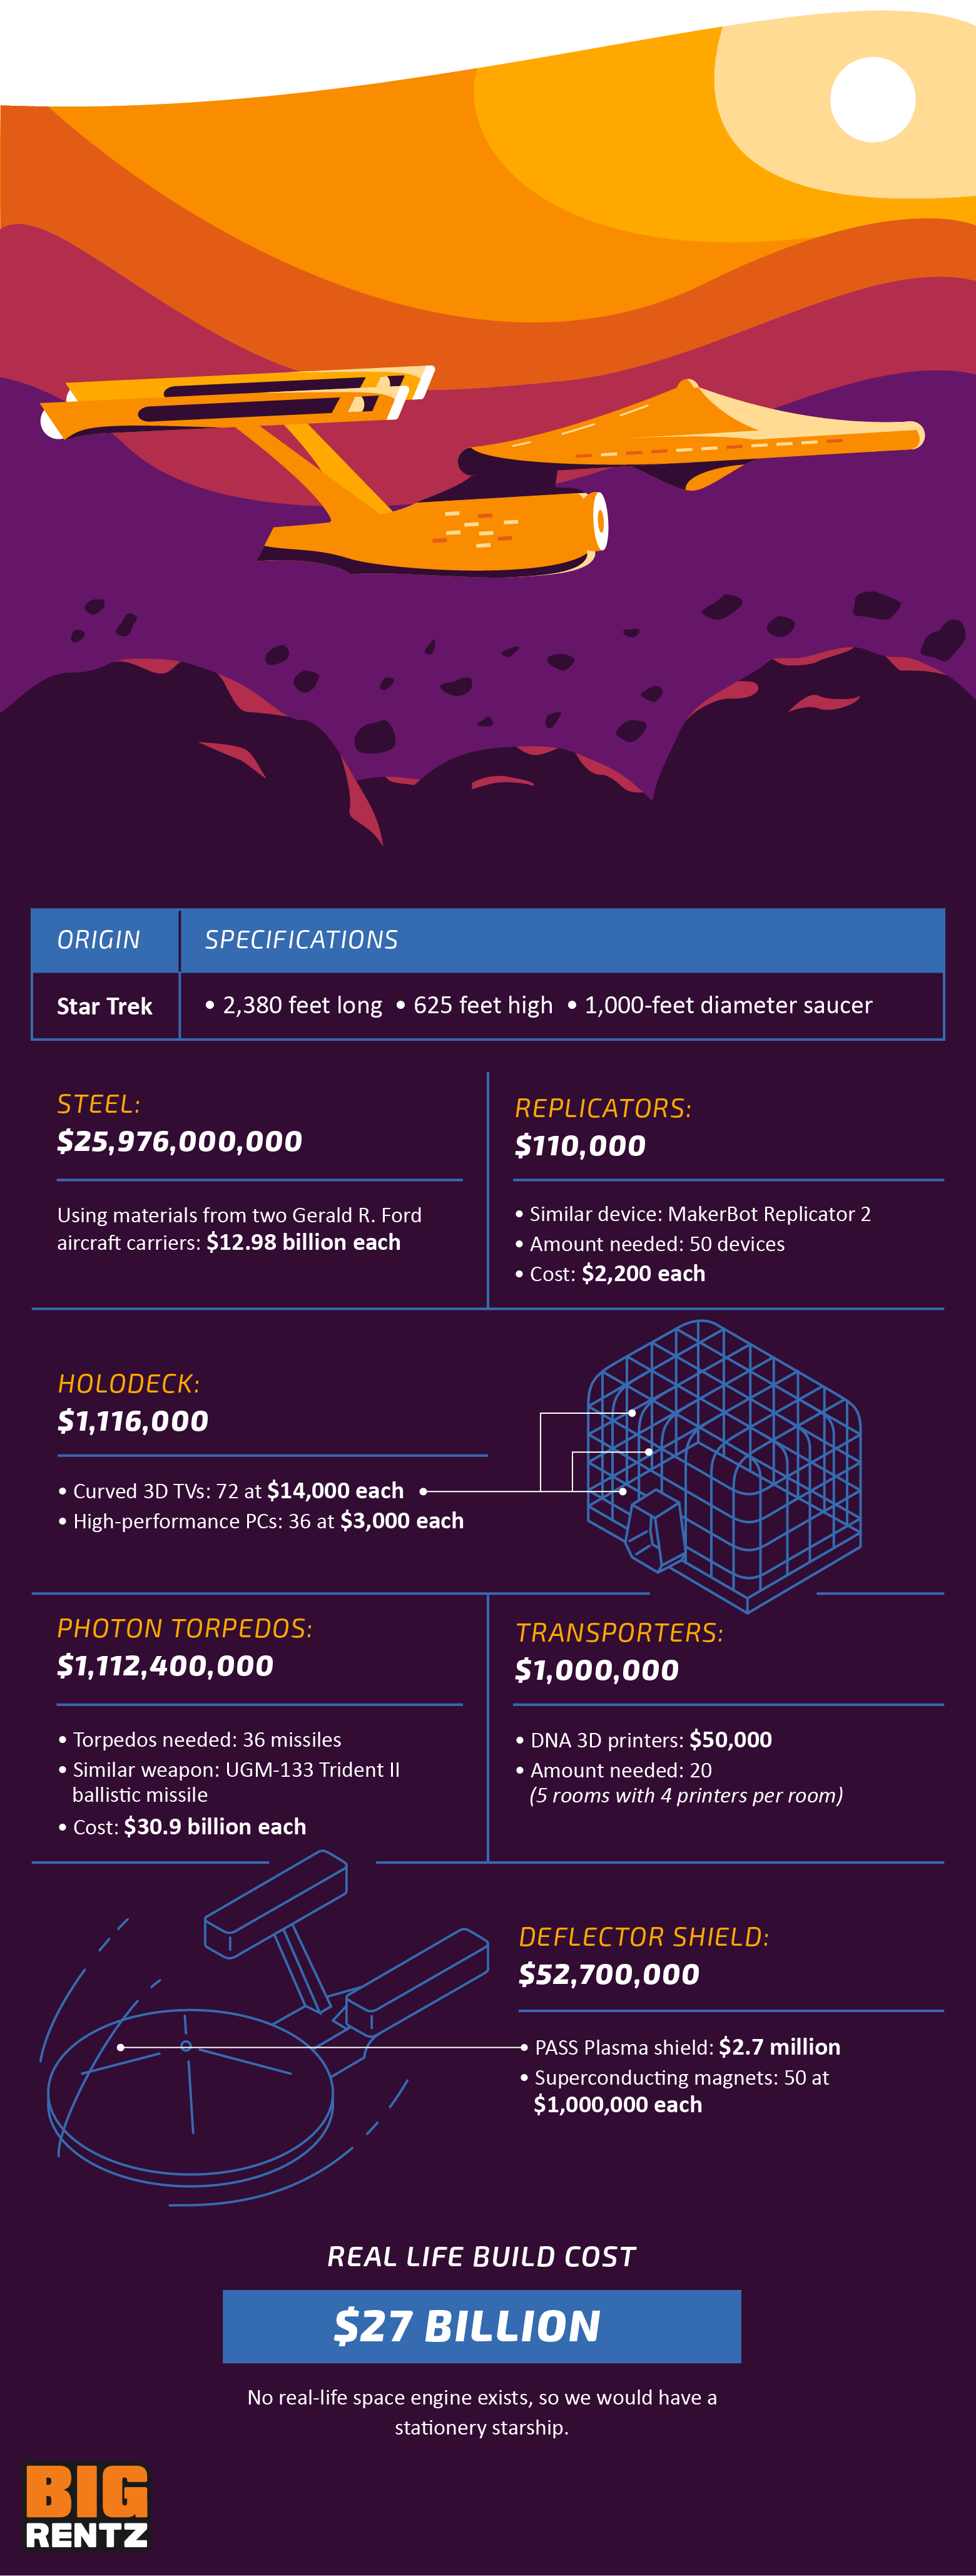 A breakdown of the costs of building Starship Enterprise, which is estimated to be $27 billion.